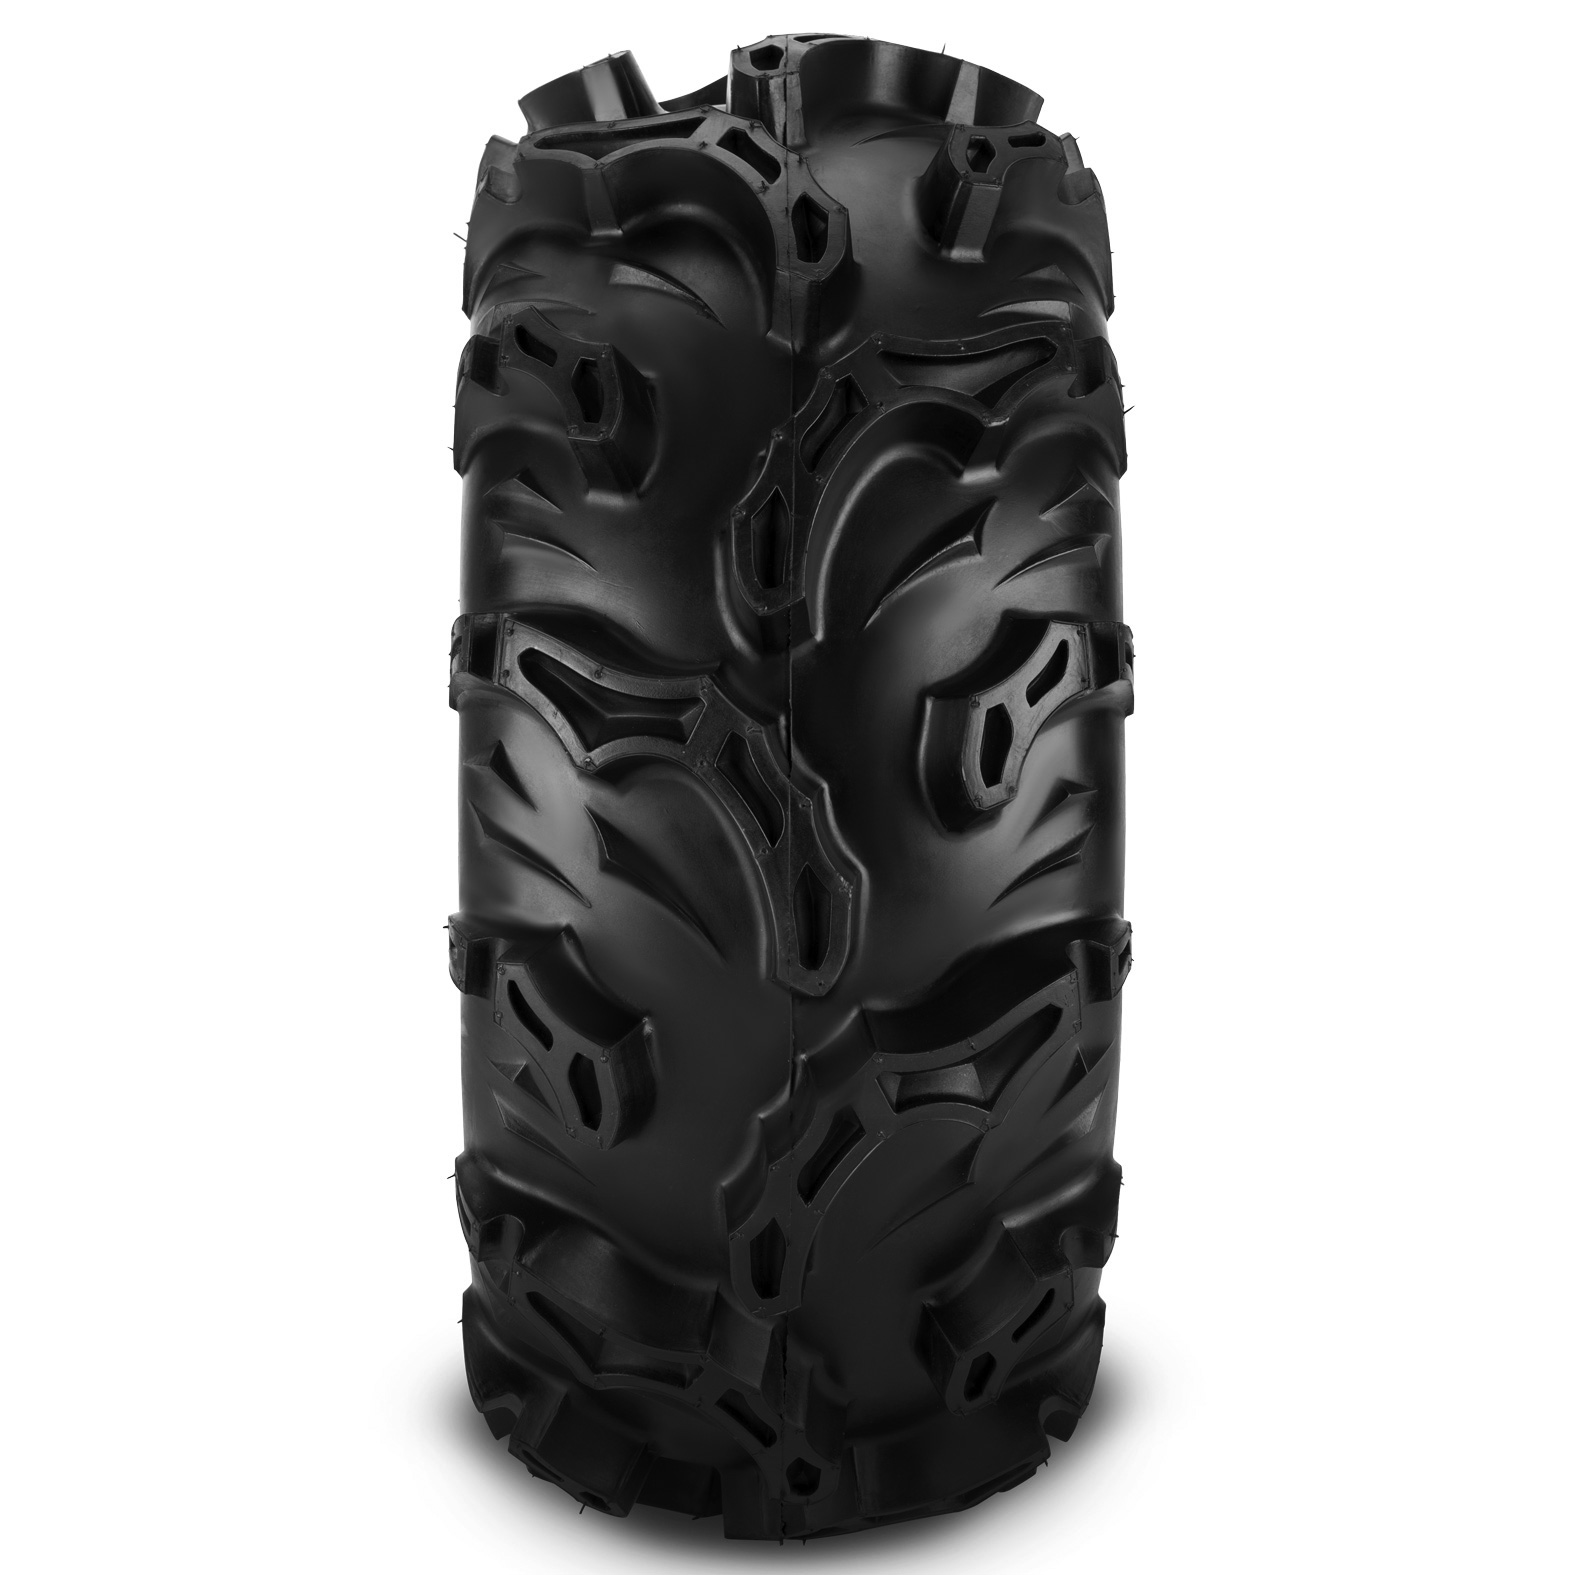 Carlisle Black Rock M/S UTV Tire - Angle